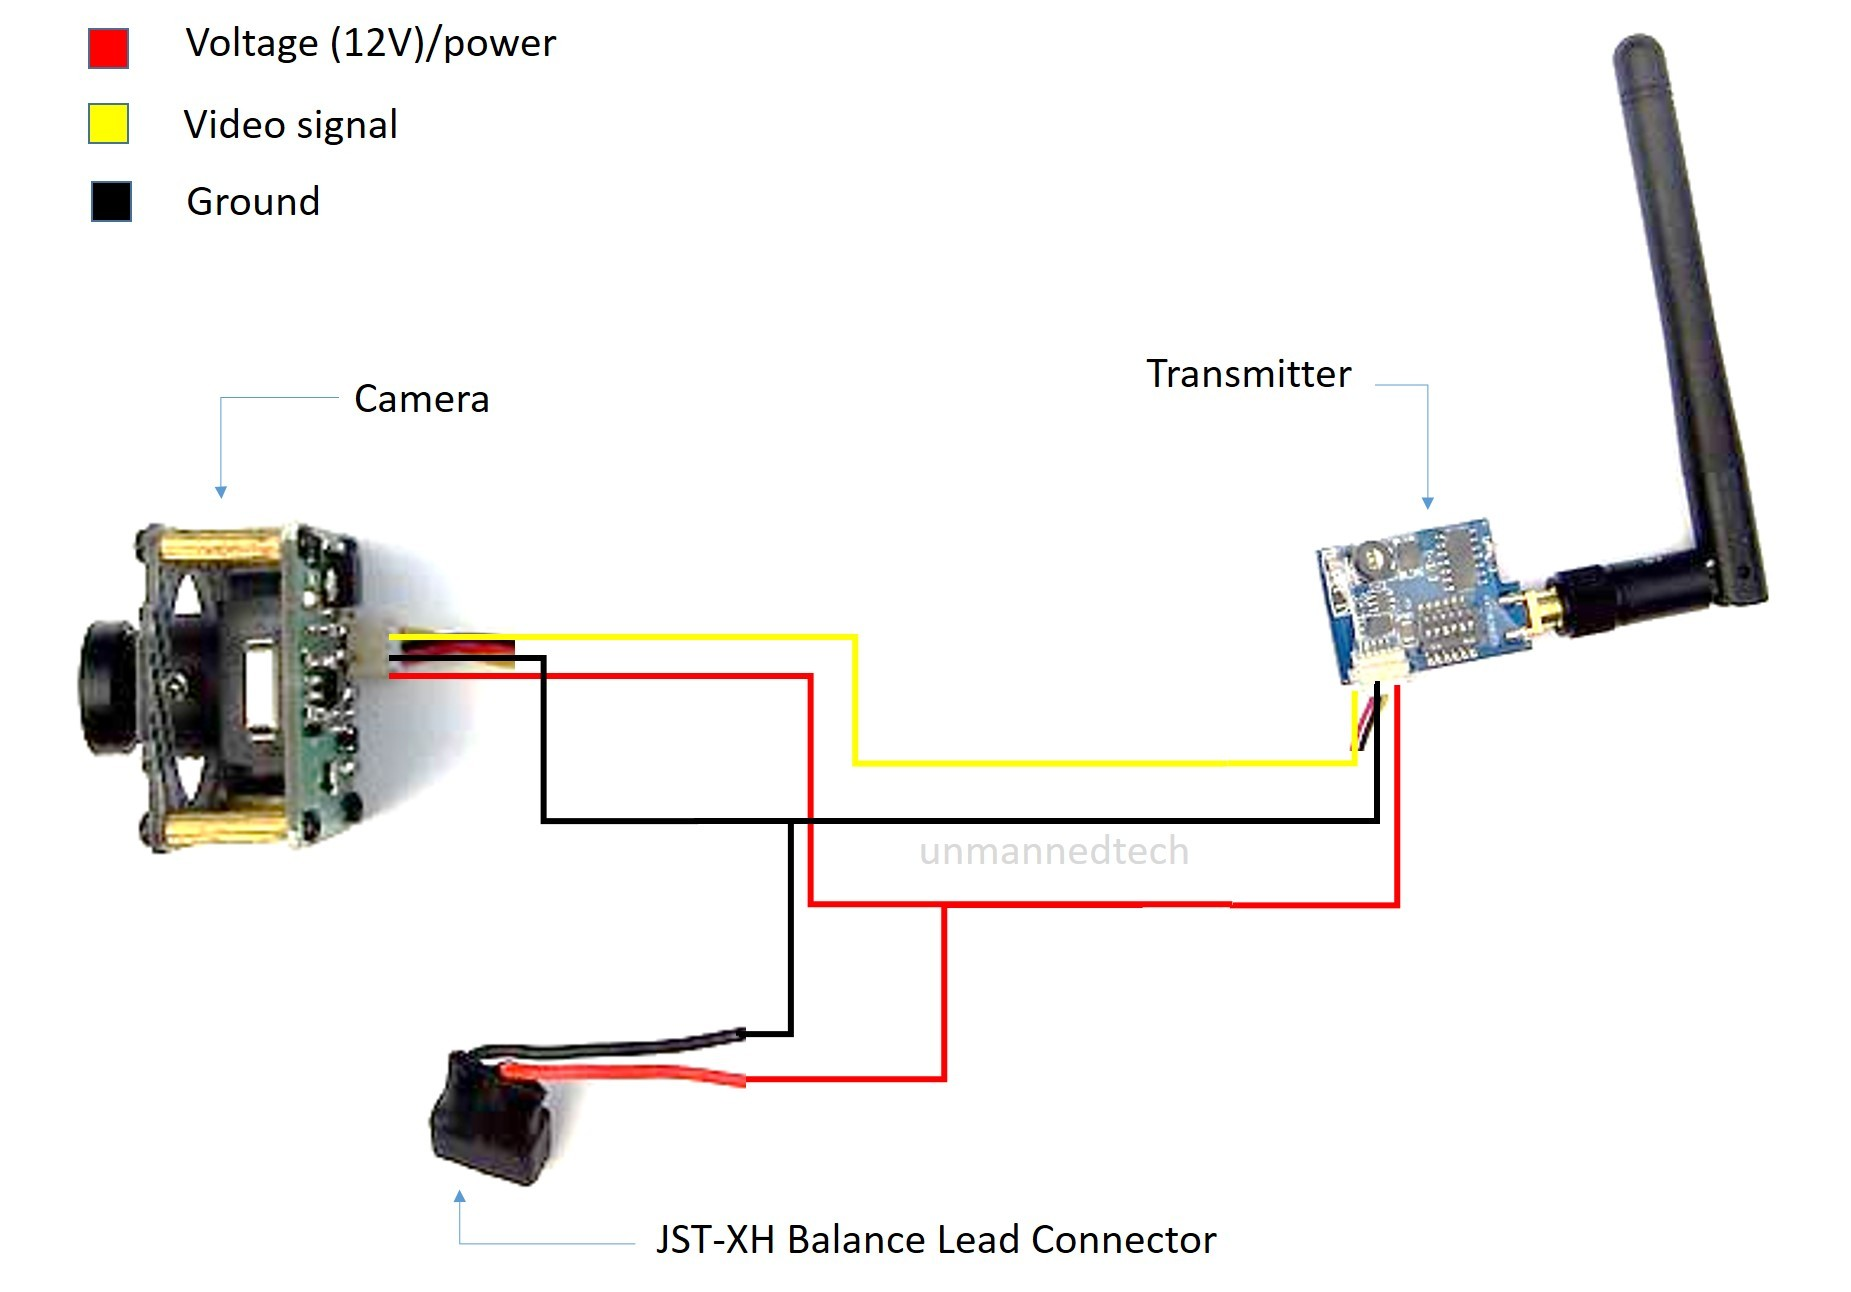 DIAGRAM] X10 Video Camera Wiring Diagram FULL Version HD Quality Wiring  Diagram - WIRESUPPLY.CINPACK.FRColor'In Pack